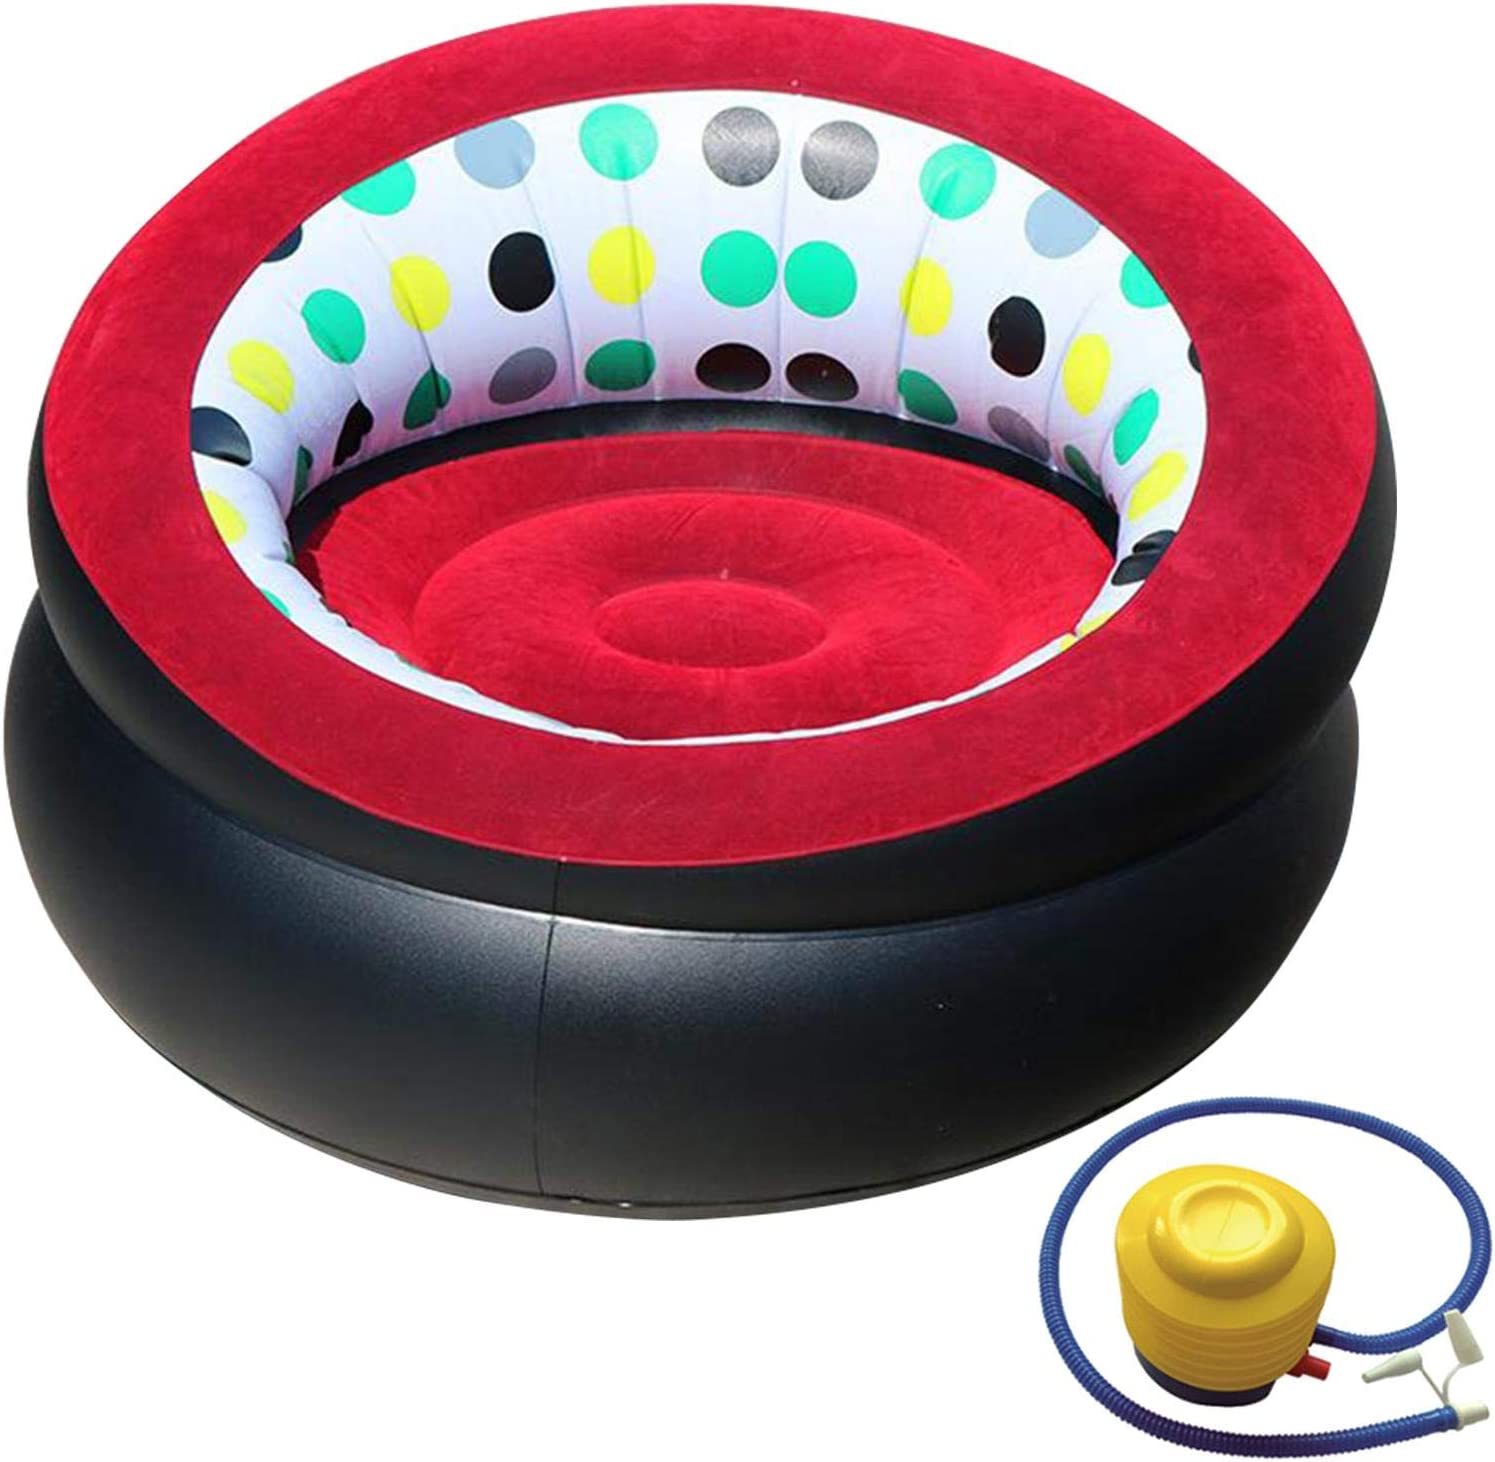 beiyoule Bean Bag unisex Chair Inflatable Inflation Ult Max 65% OFF Sofa Air